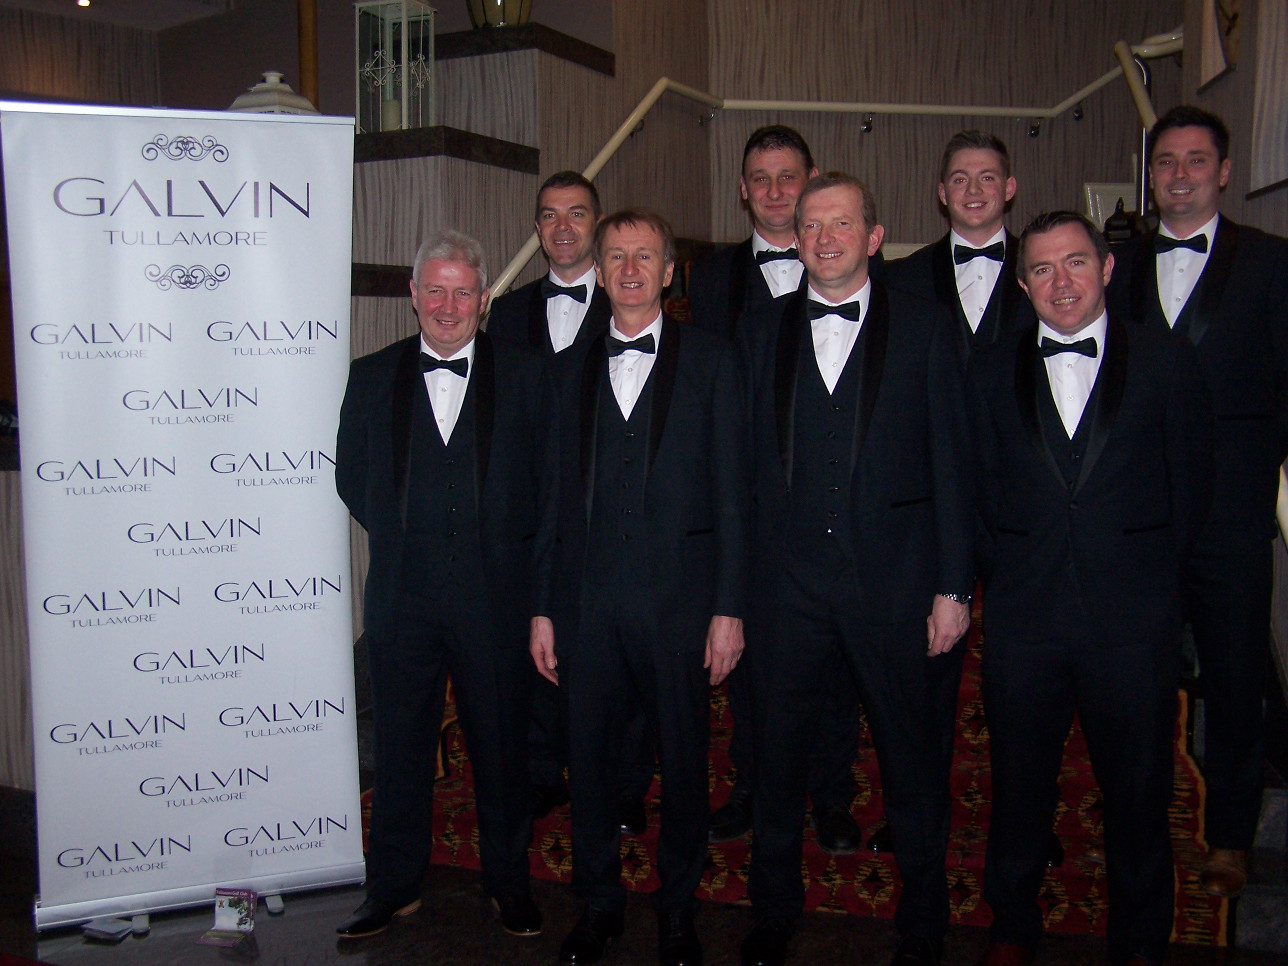 Galvin for Men sponsored the dress suits THANK YOU